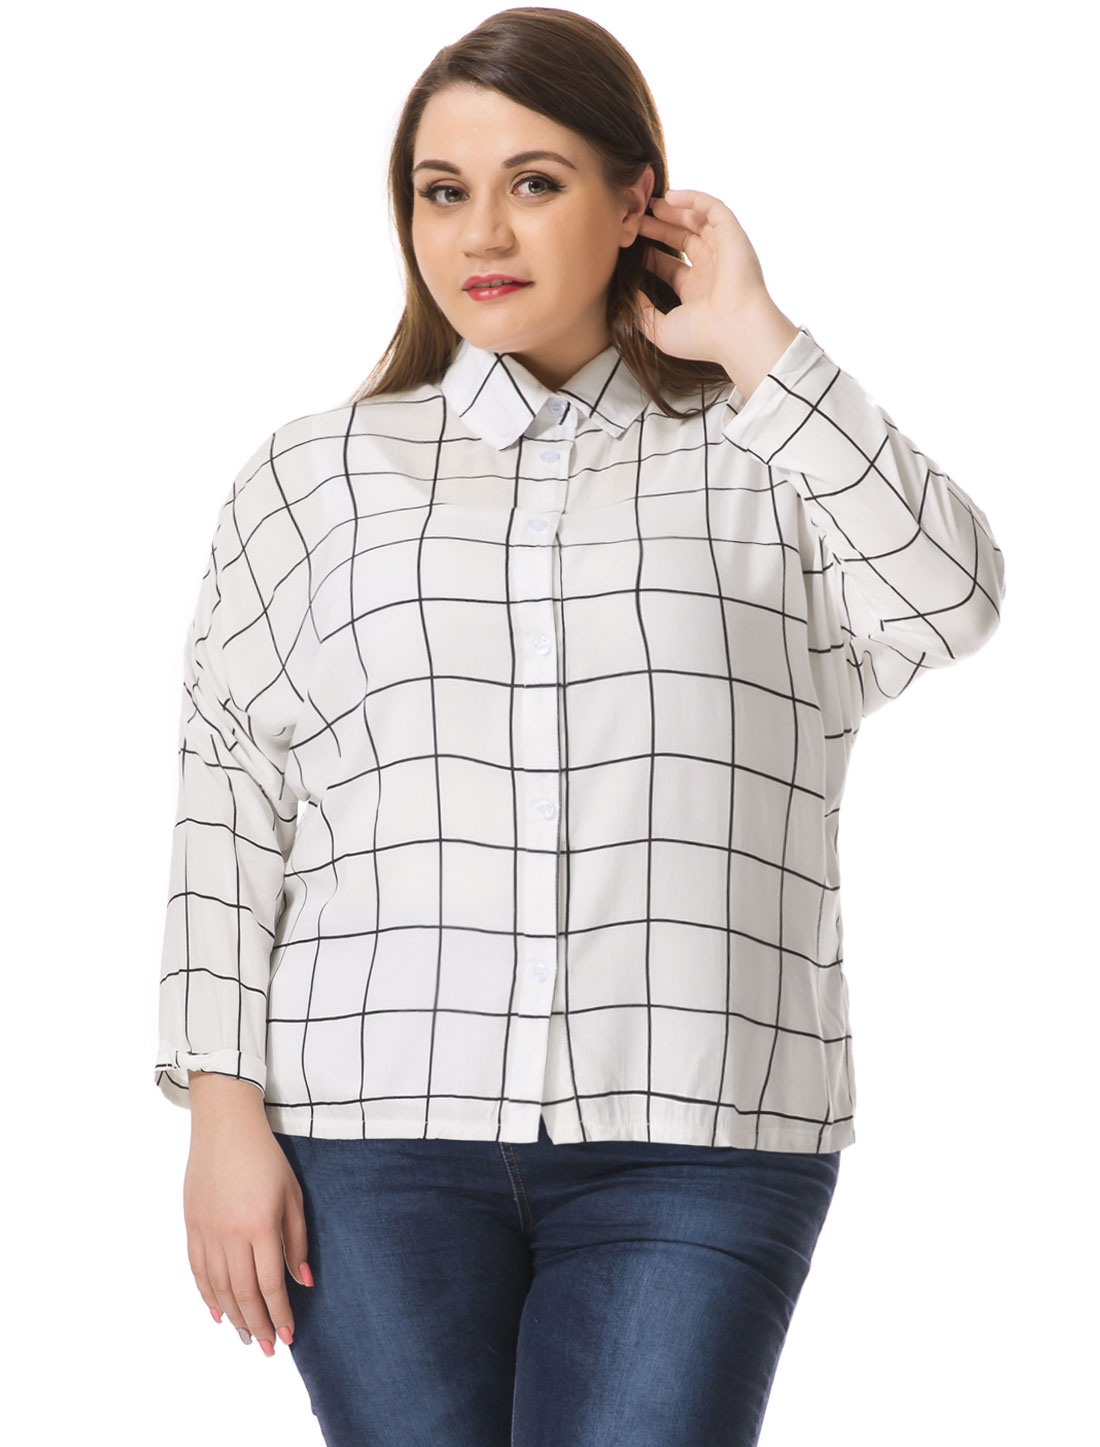 Women Plus Size Hi-Lo Hem Batwing Sleeves Checked Shirt White 3X